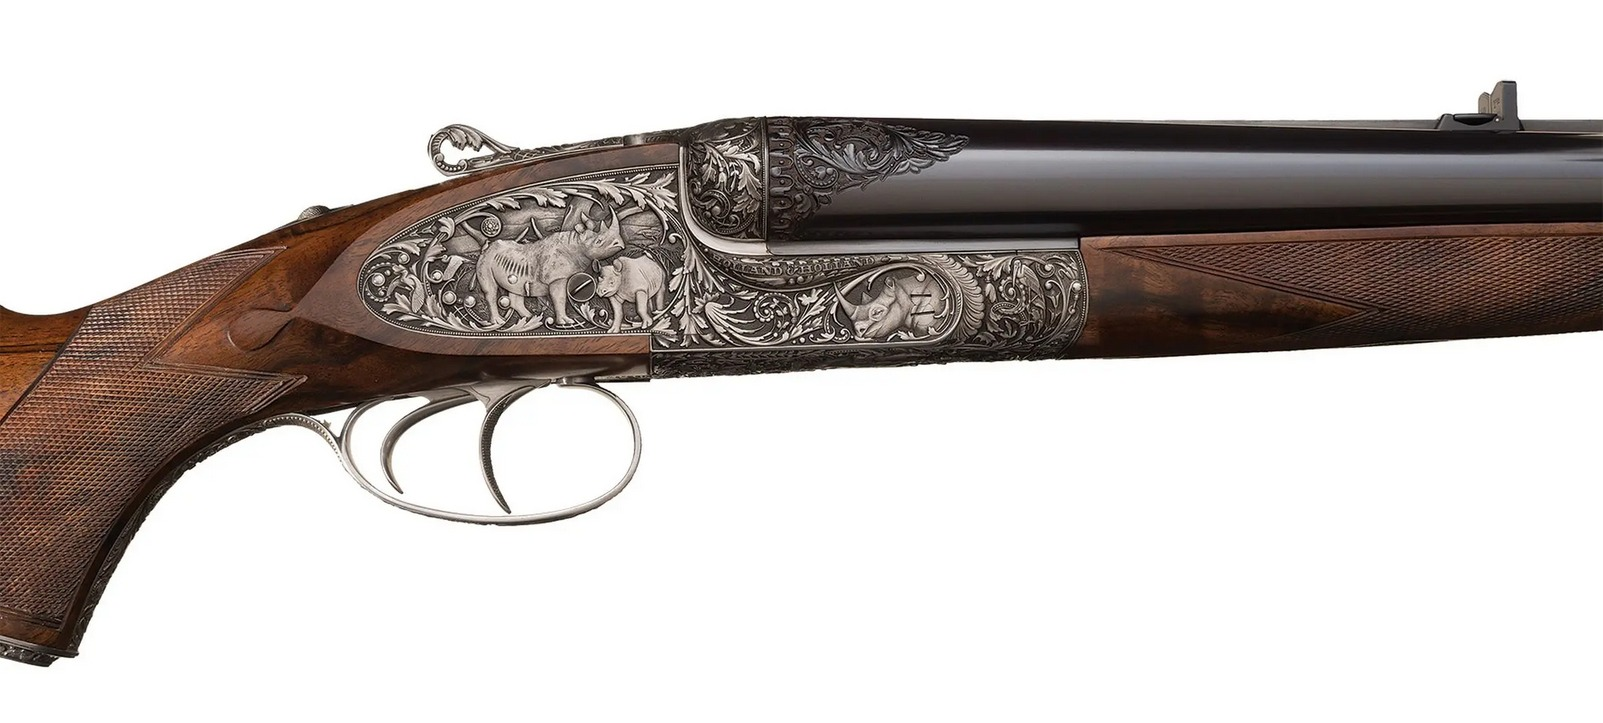 Holland and Holland Phillippe Grifnee engraved double rifle Black rhinoceros